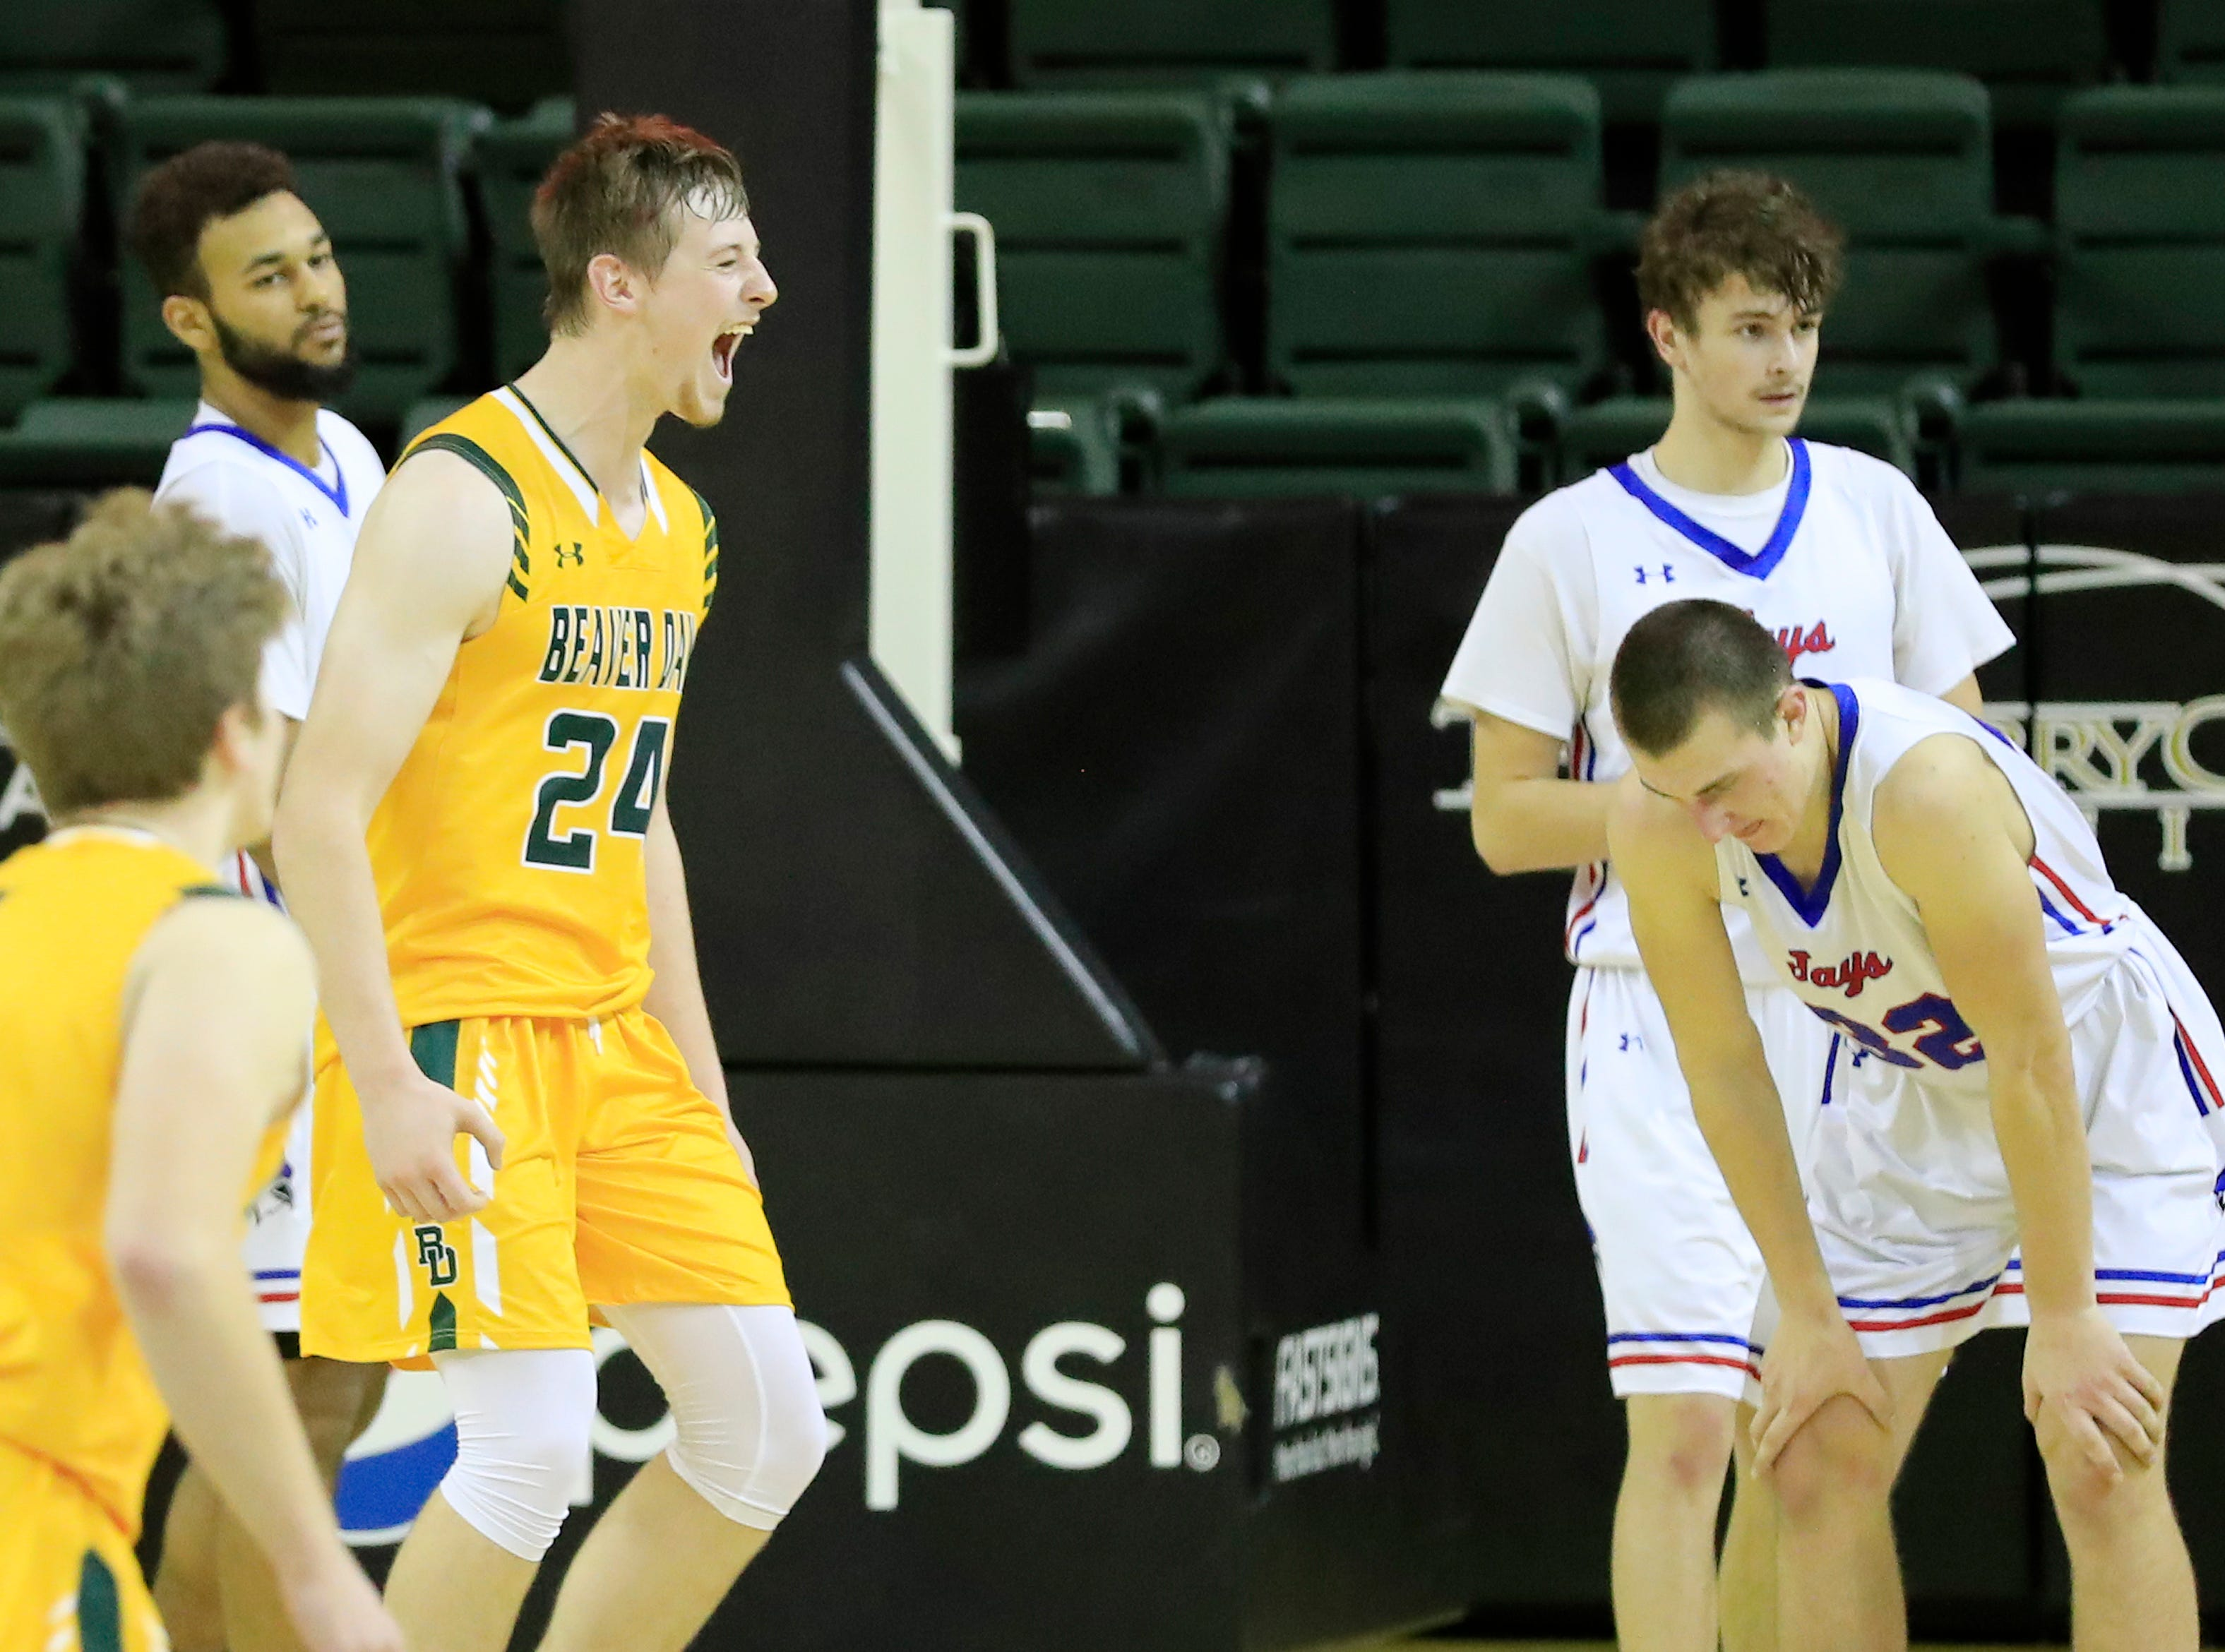 Beaver Dam's Marshall McGauley (24) celebrates after the Golden Beavers defeated Merrill with a buzzer-beater at the Shawano Shootout at the Kress Center on Friday, December 28, 2018 in Green Bay, Wis.